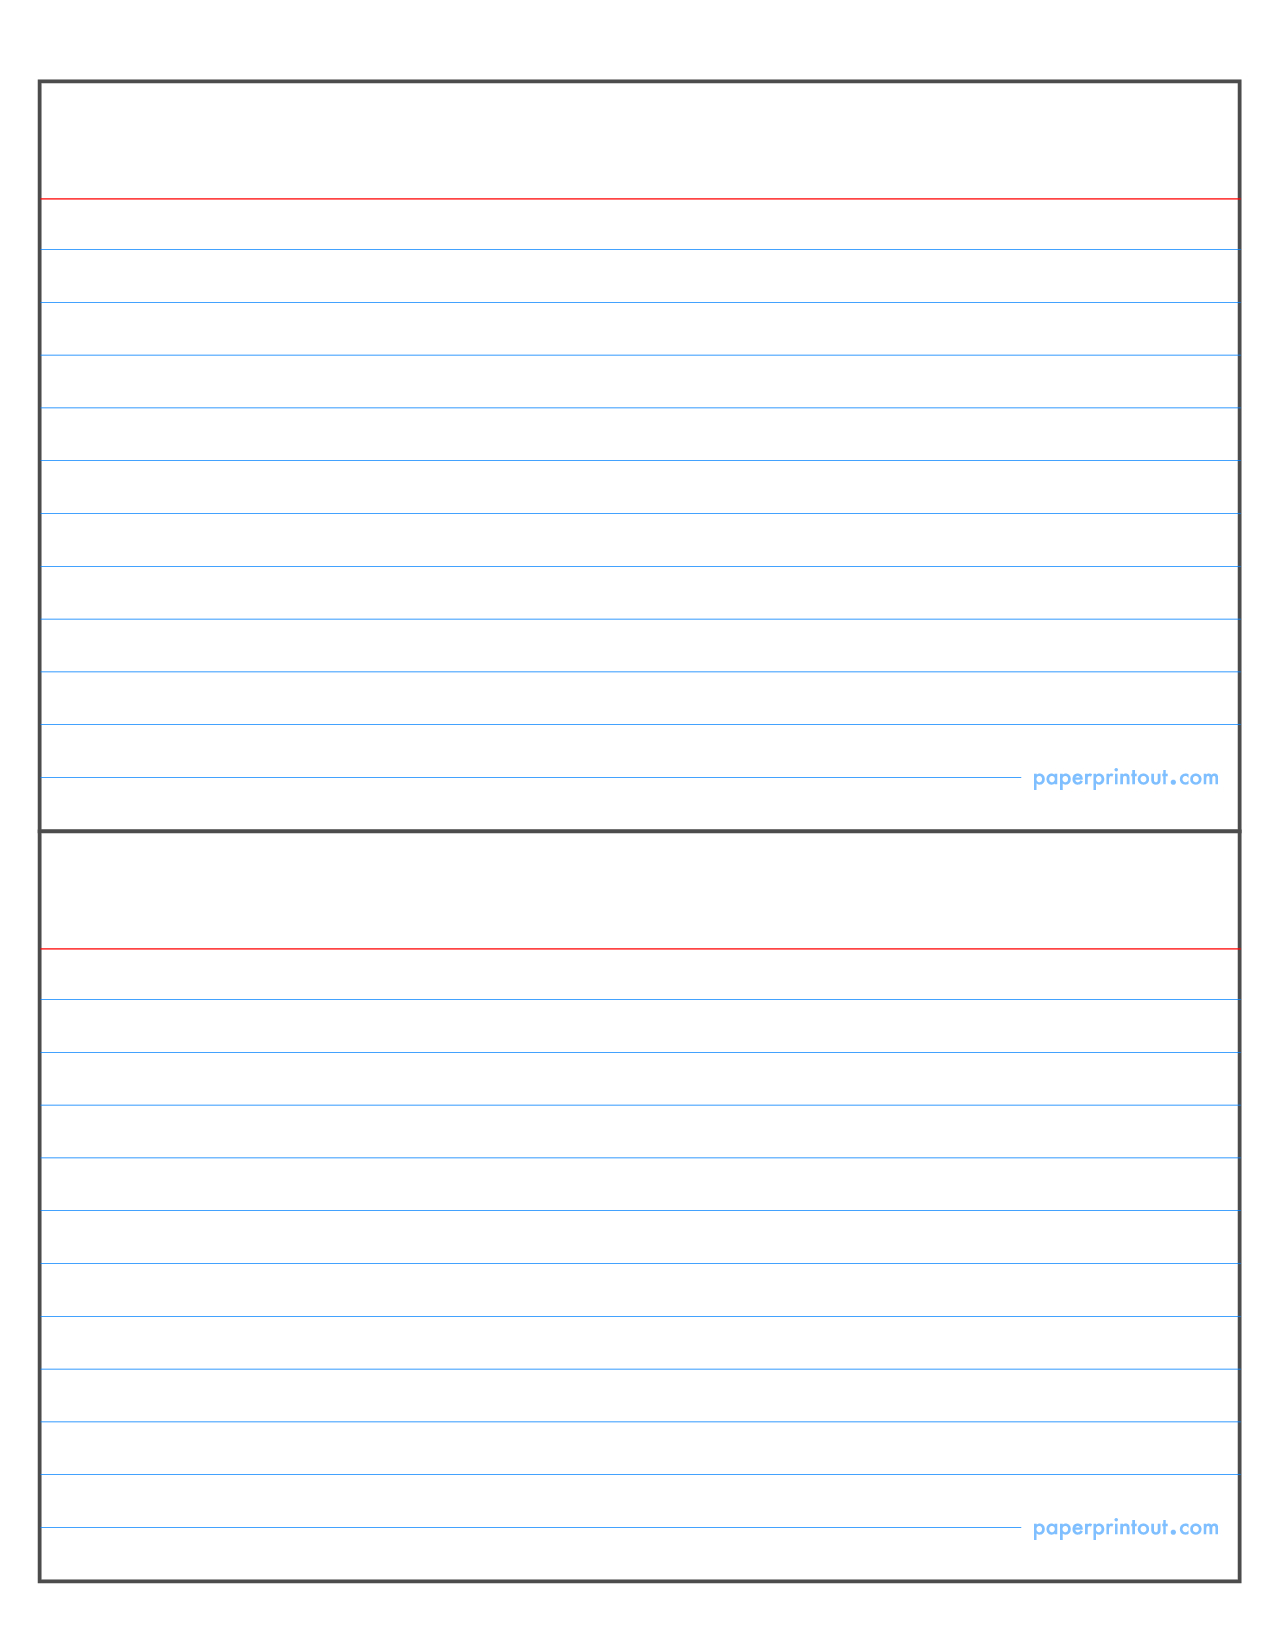 Index Card Template | E Commercewordpress With 5 By 8 Index Card Template